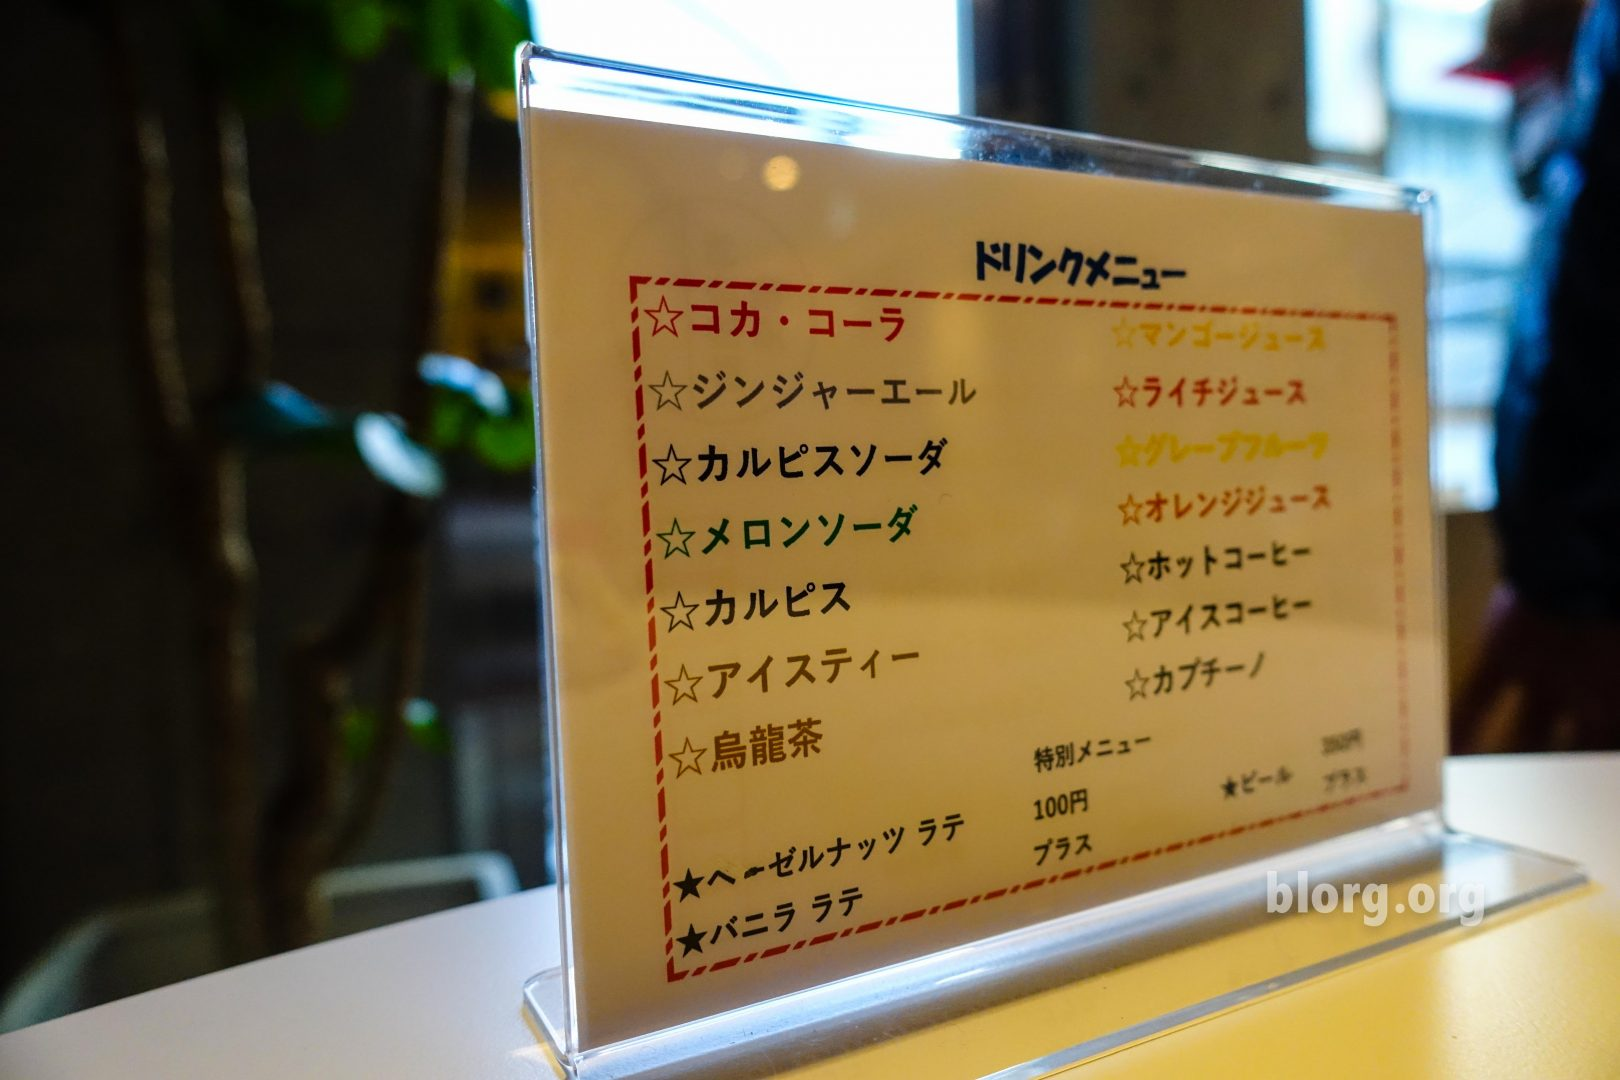 Owl cafe Japan drink menu